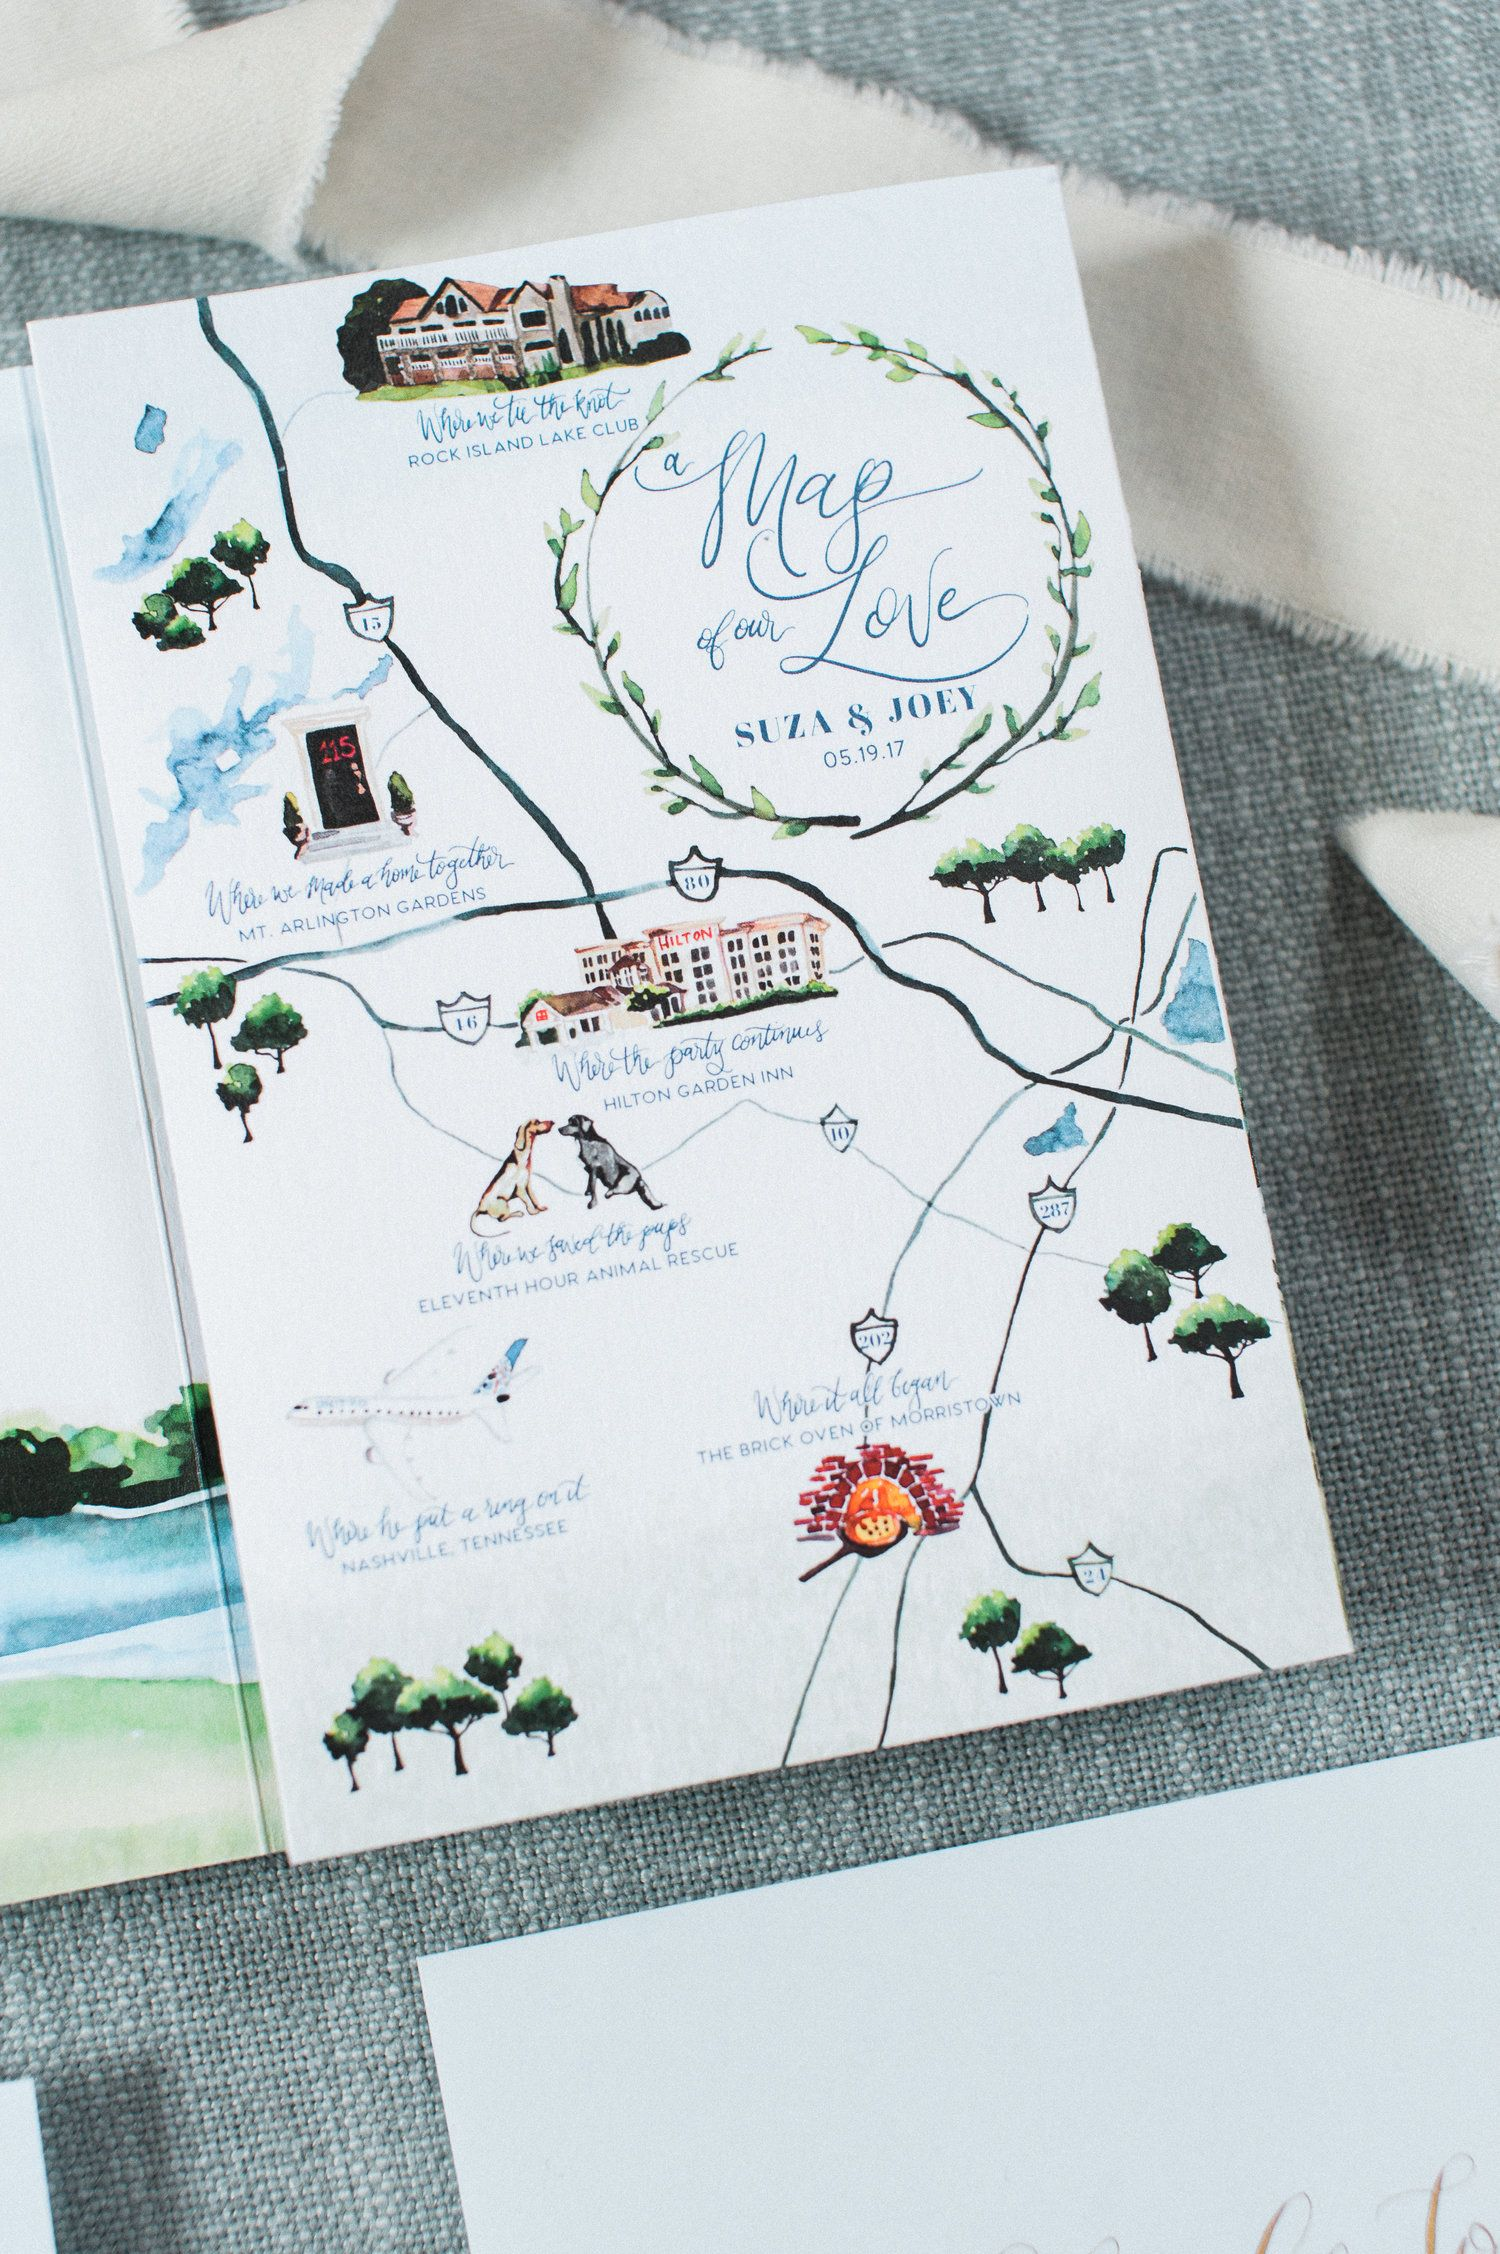 Map Of Our Love Custom Wedding Map Great Wedding Map Idea Wedding Invitations And Save The Dates By Watercolor Wedding Map Custom Wedding Map Wedding Map